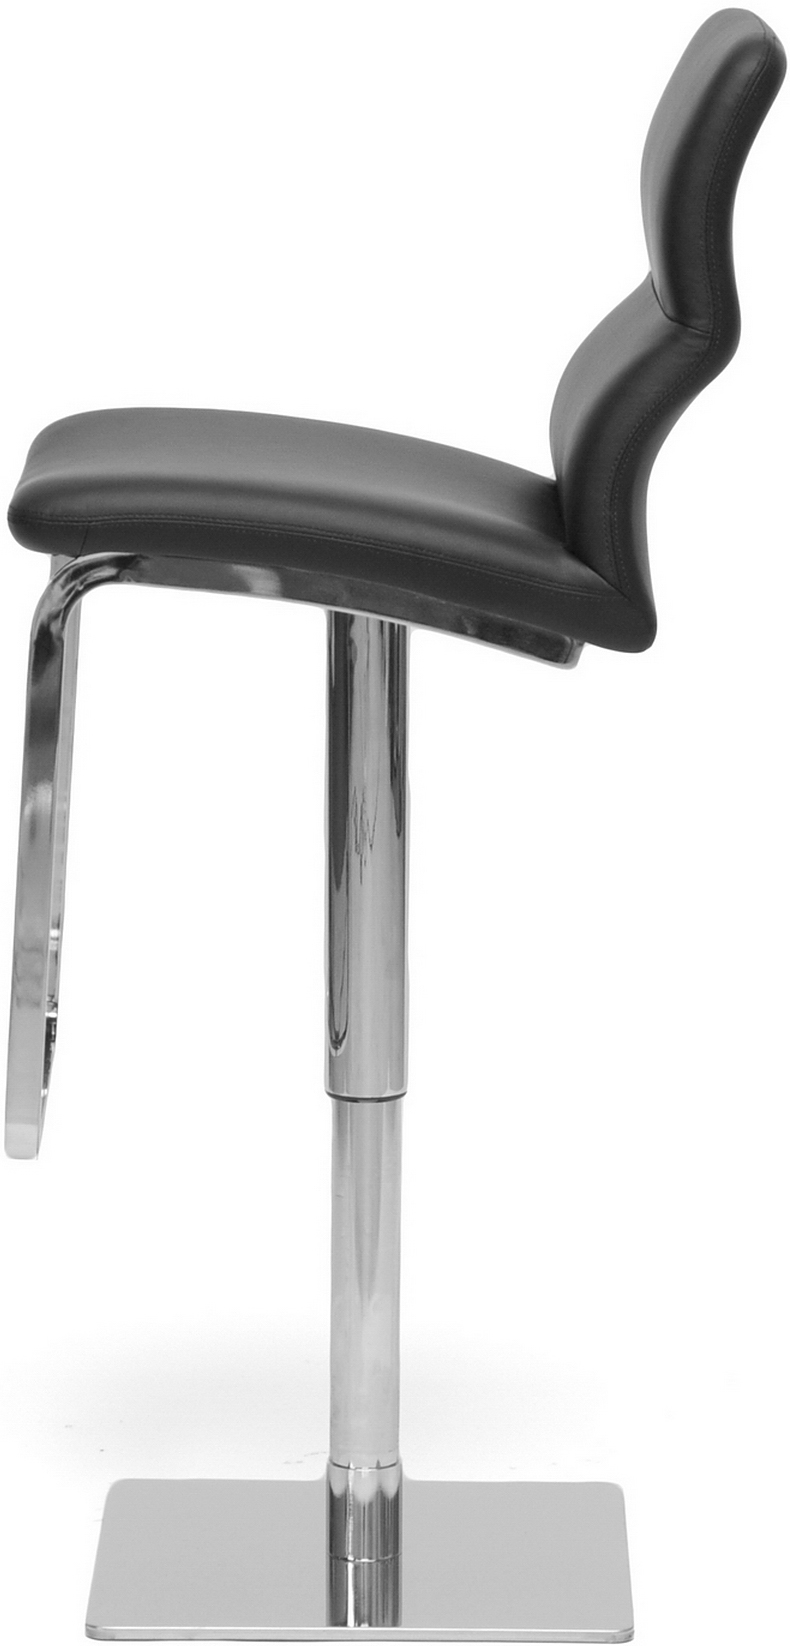 the baxton studio helsinki modern bar stool black